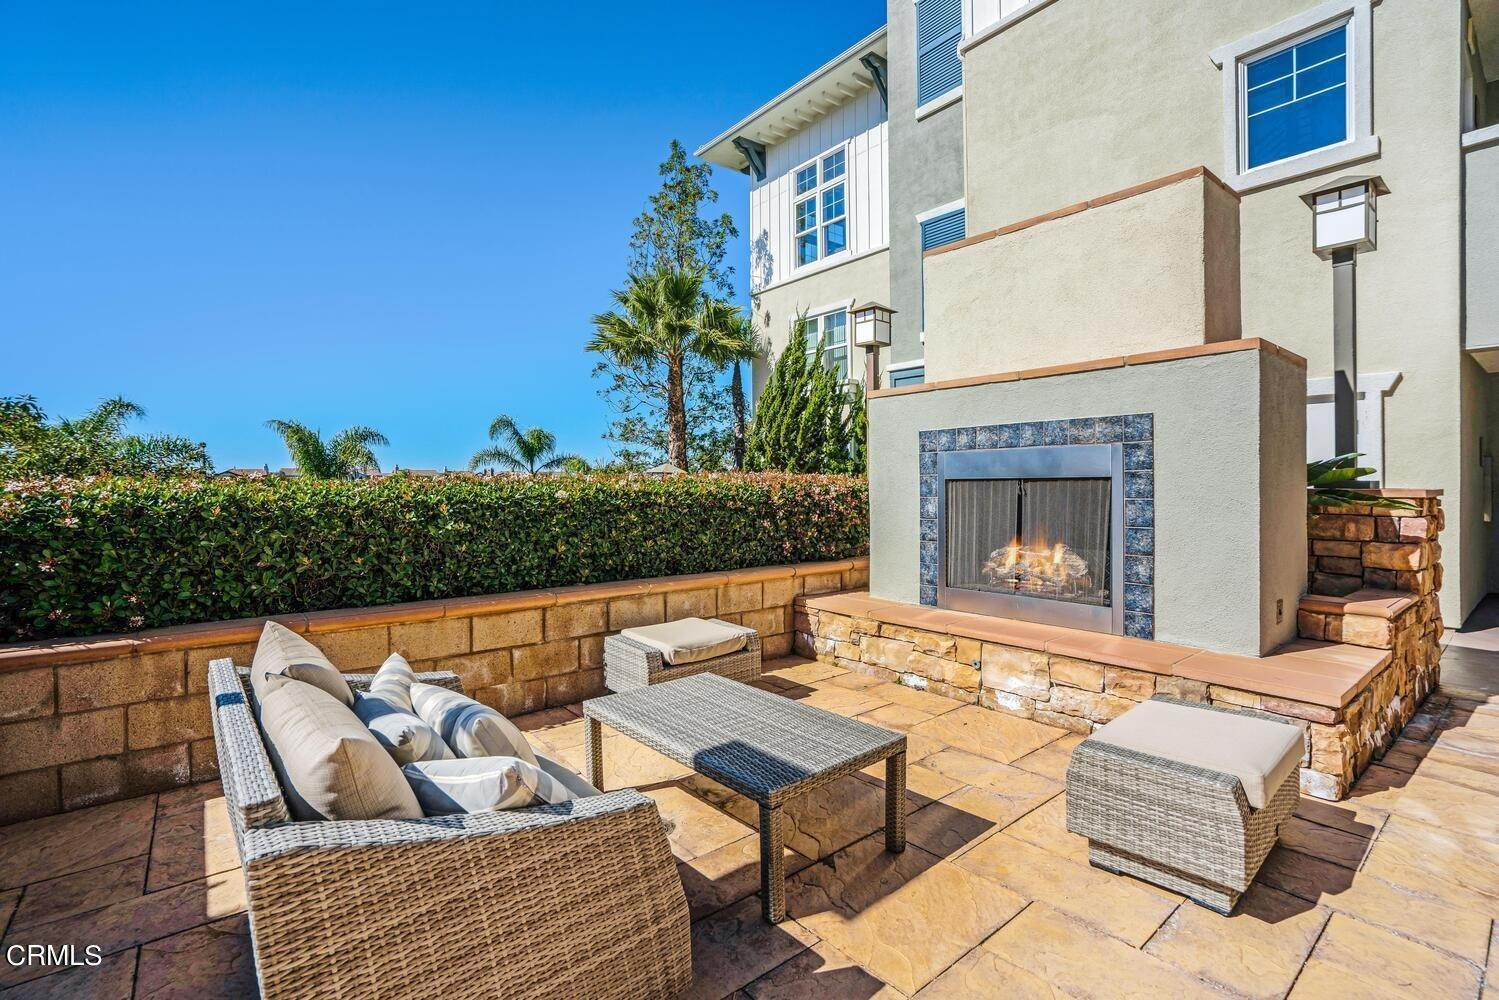 27. Condominiums for Sale at 1405 Windshore Way Oxnard, California 93035 United States